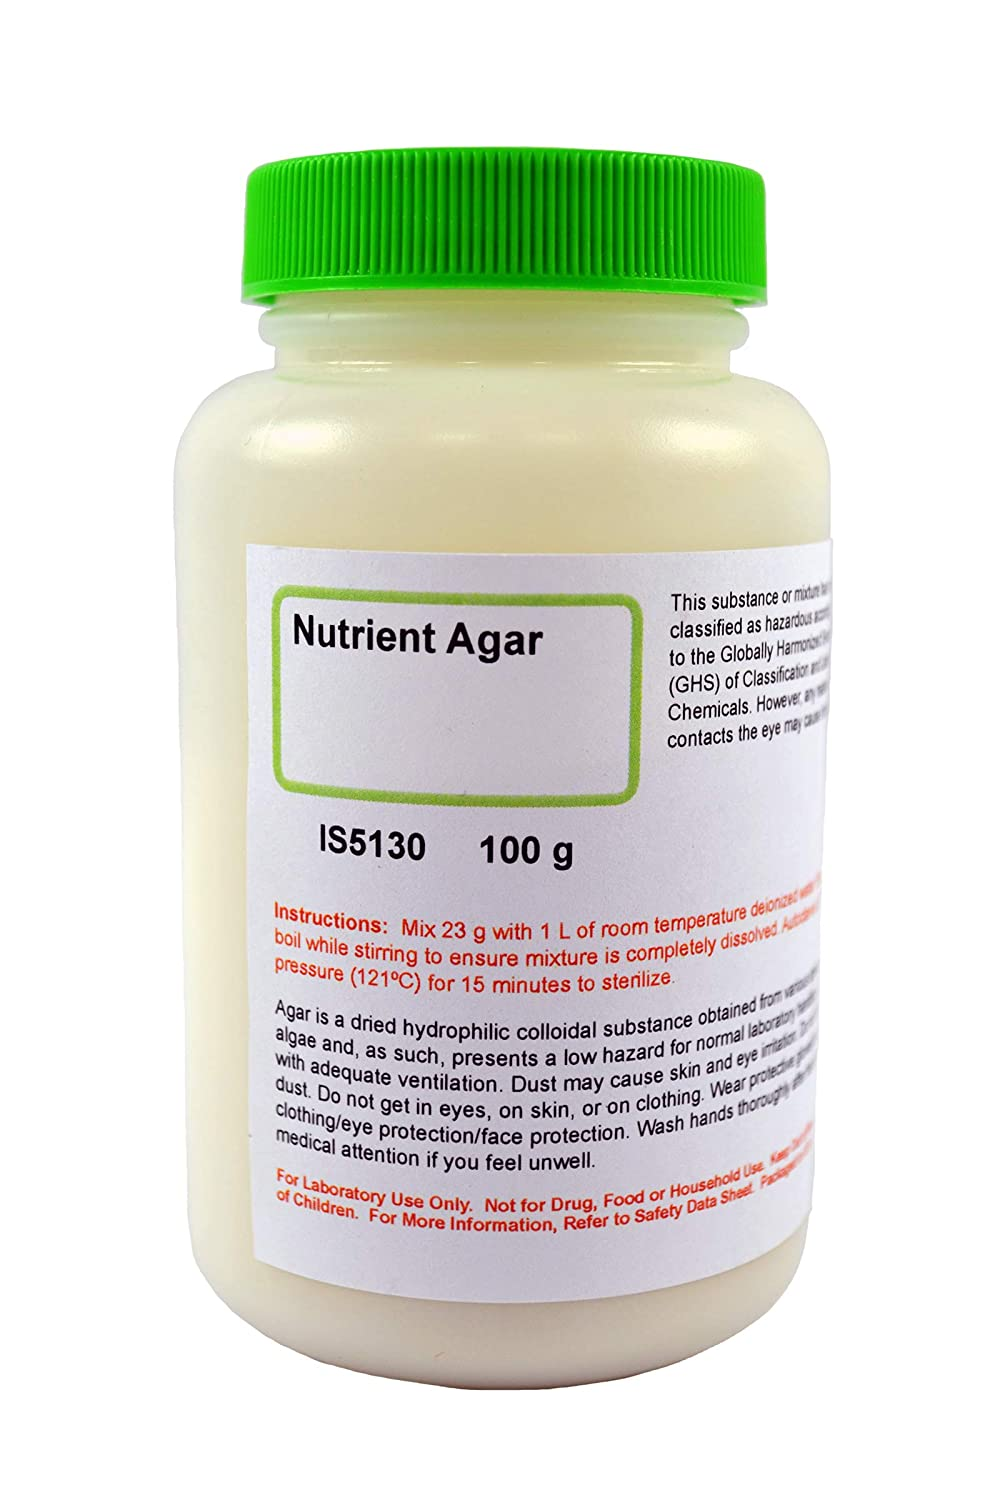 Nutrient Agar, 100g - General Purpose Growth Medium for Petri Dishes or Test Tube Slants - Makes 4 Liters - Perfect for Laboratory, Classroom & at Home Science Experiments - Innovating Science